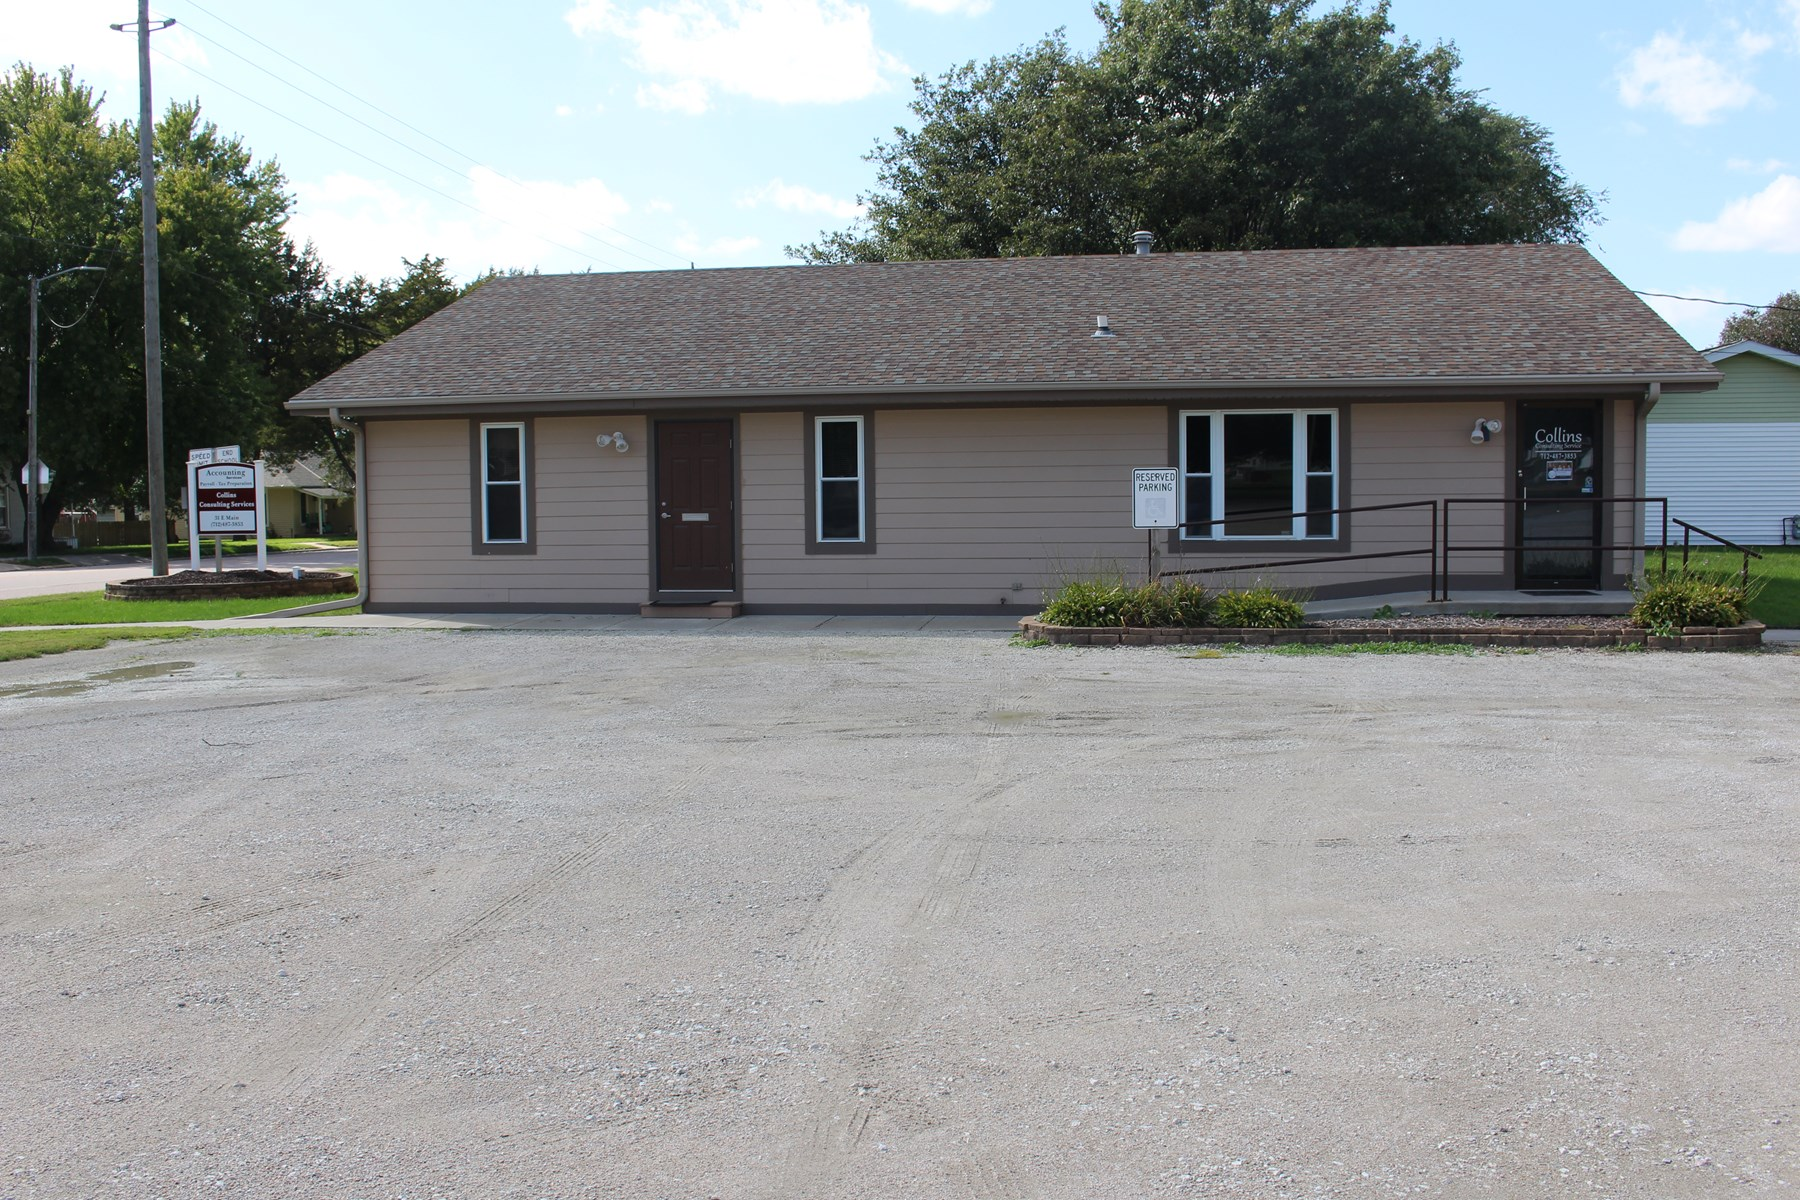 Treynor Iowa Commercial Property For Sale Pottawattamie Co